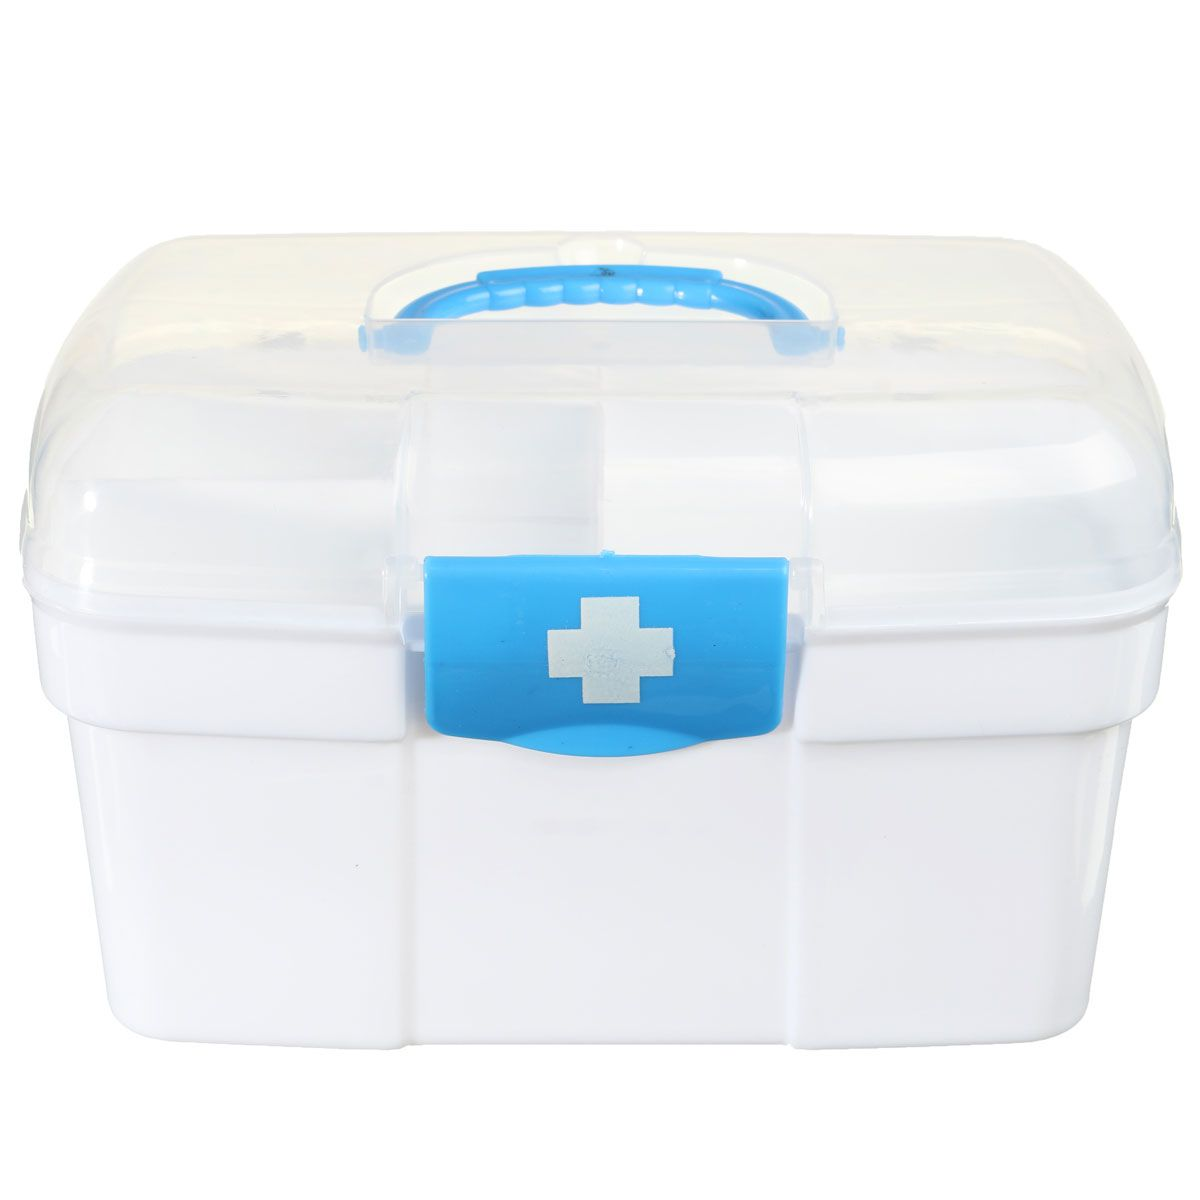 NEW Safurance Plastic 2 Layers Home Medicine Chest First Aid Kit Holder Storage Box Emergency Kits Security Safety